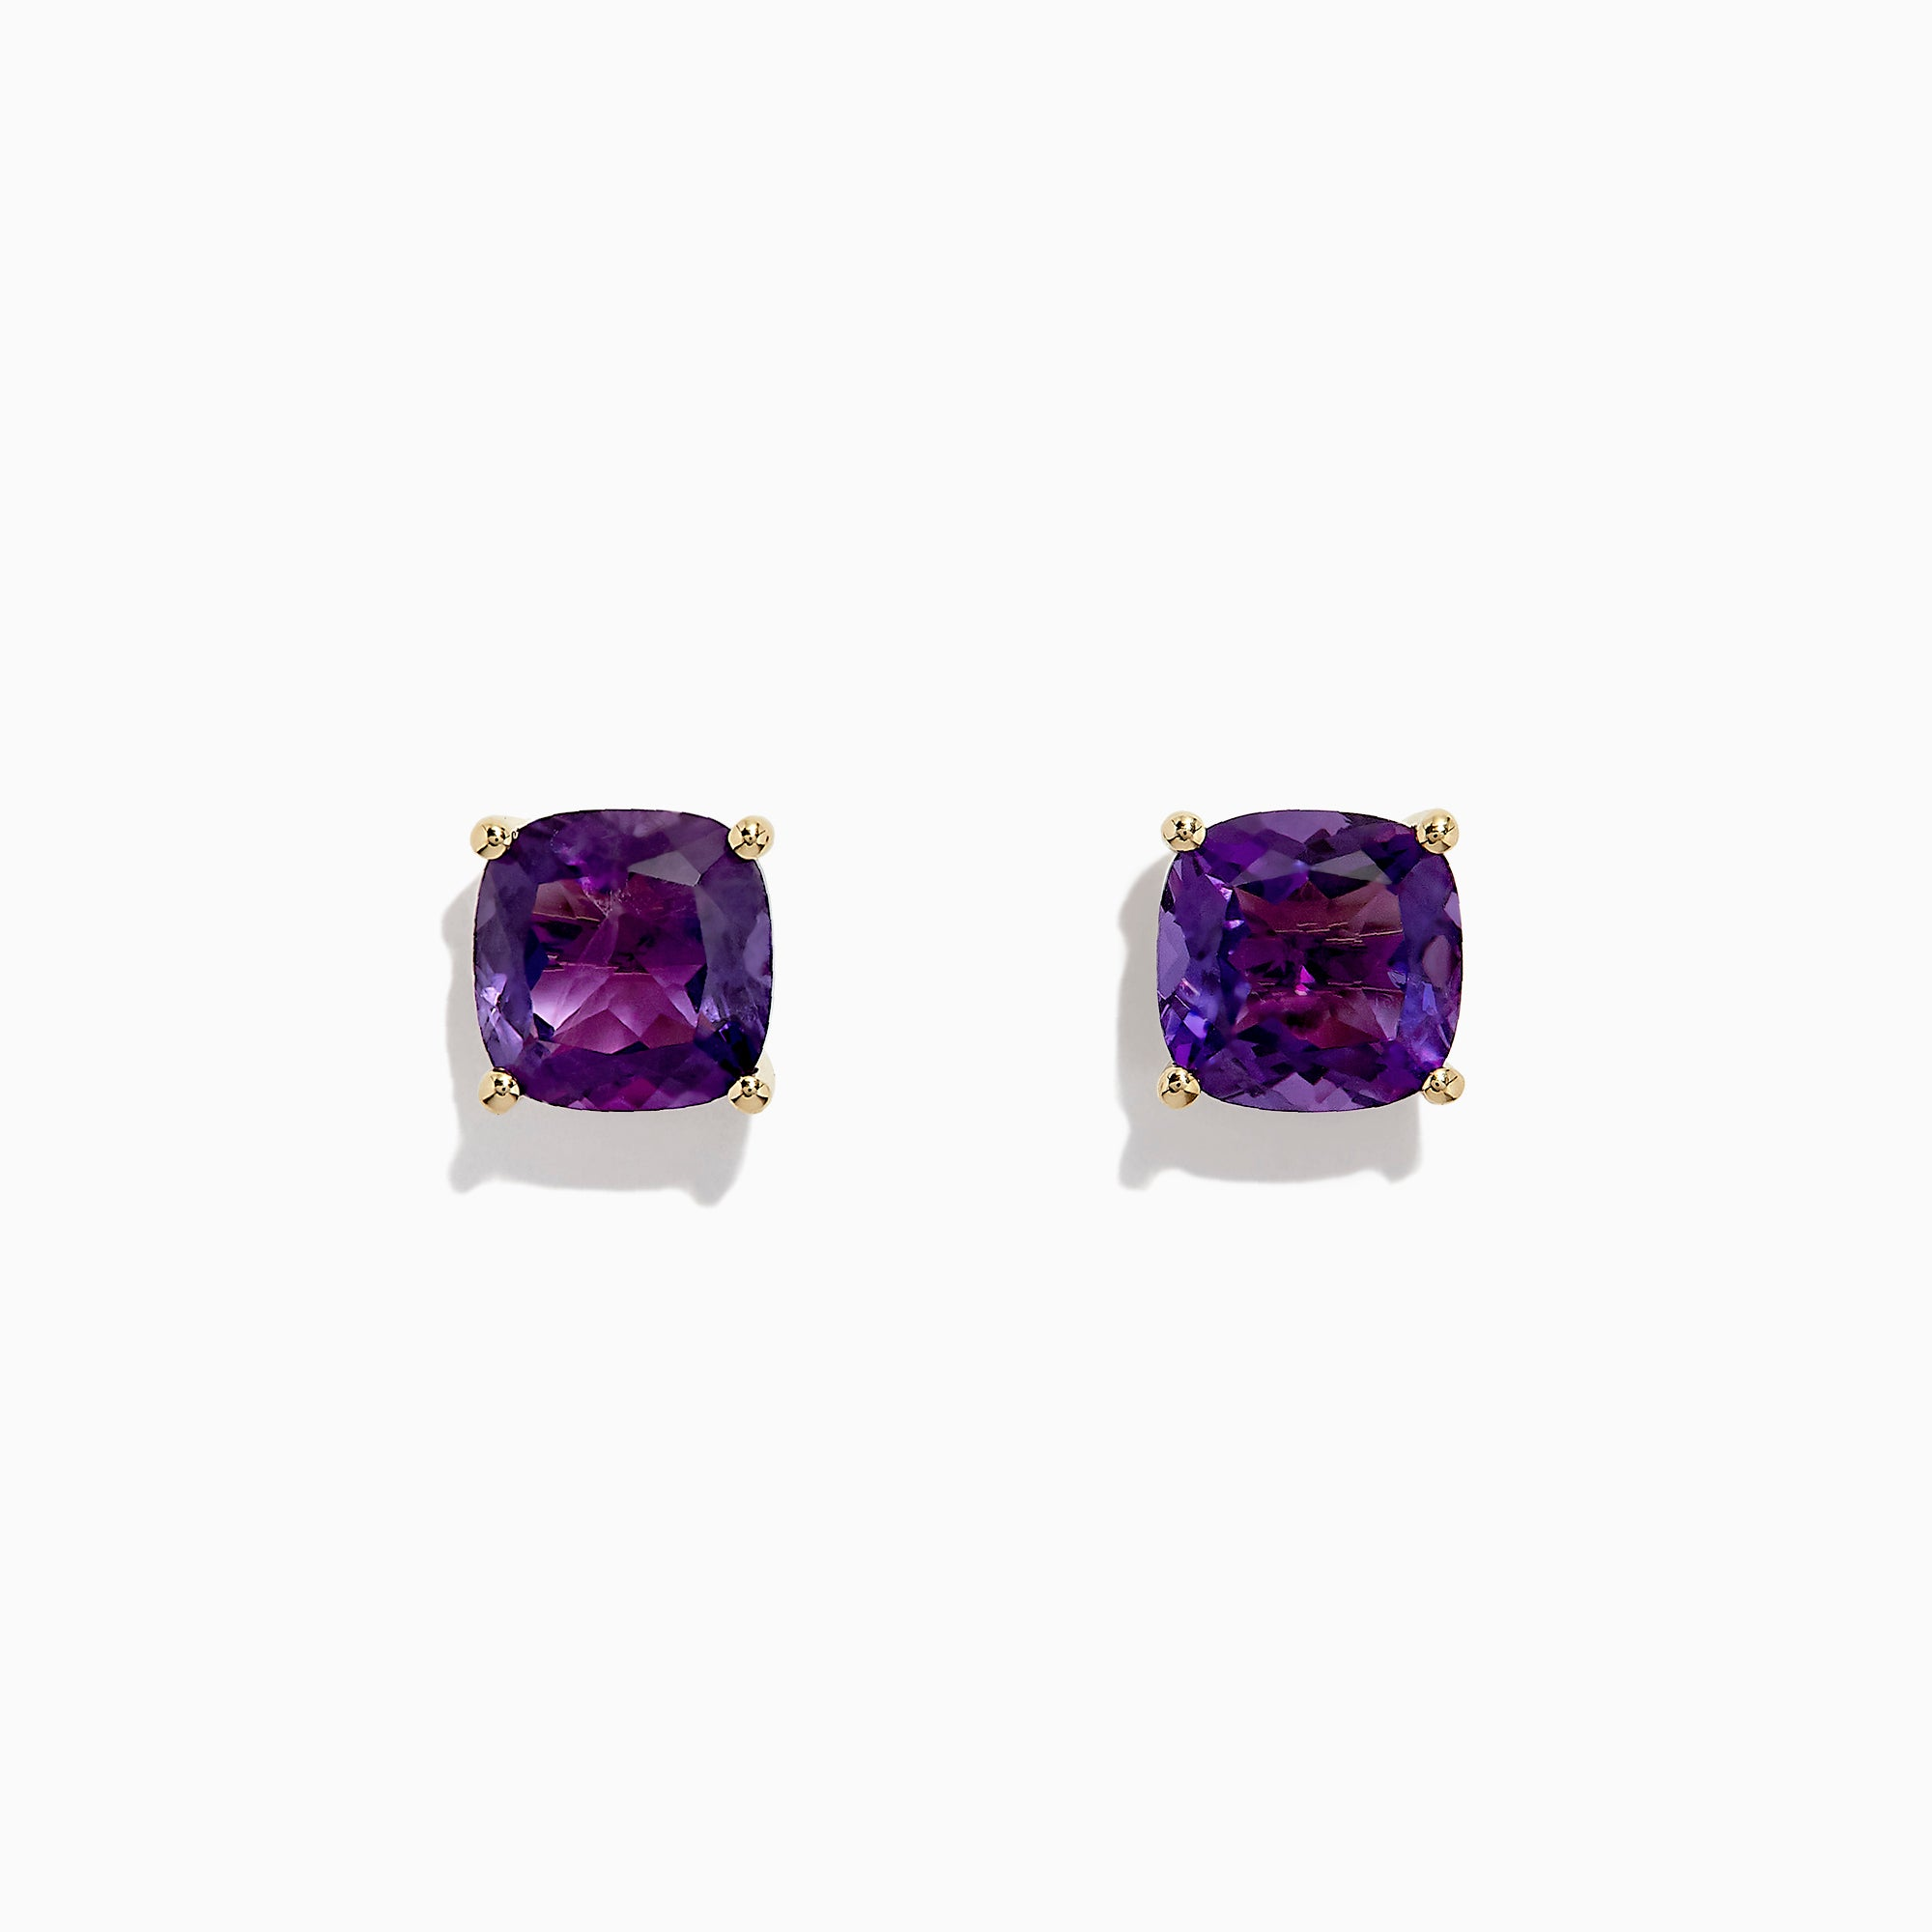 Effy 14K Yellow Gold Amethyst Stud Earrings, 4.25 TCW